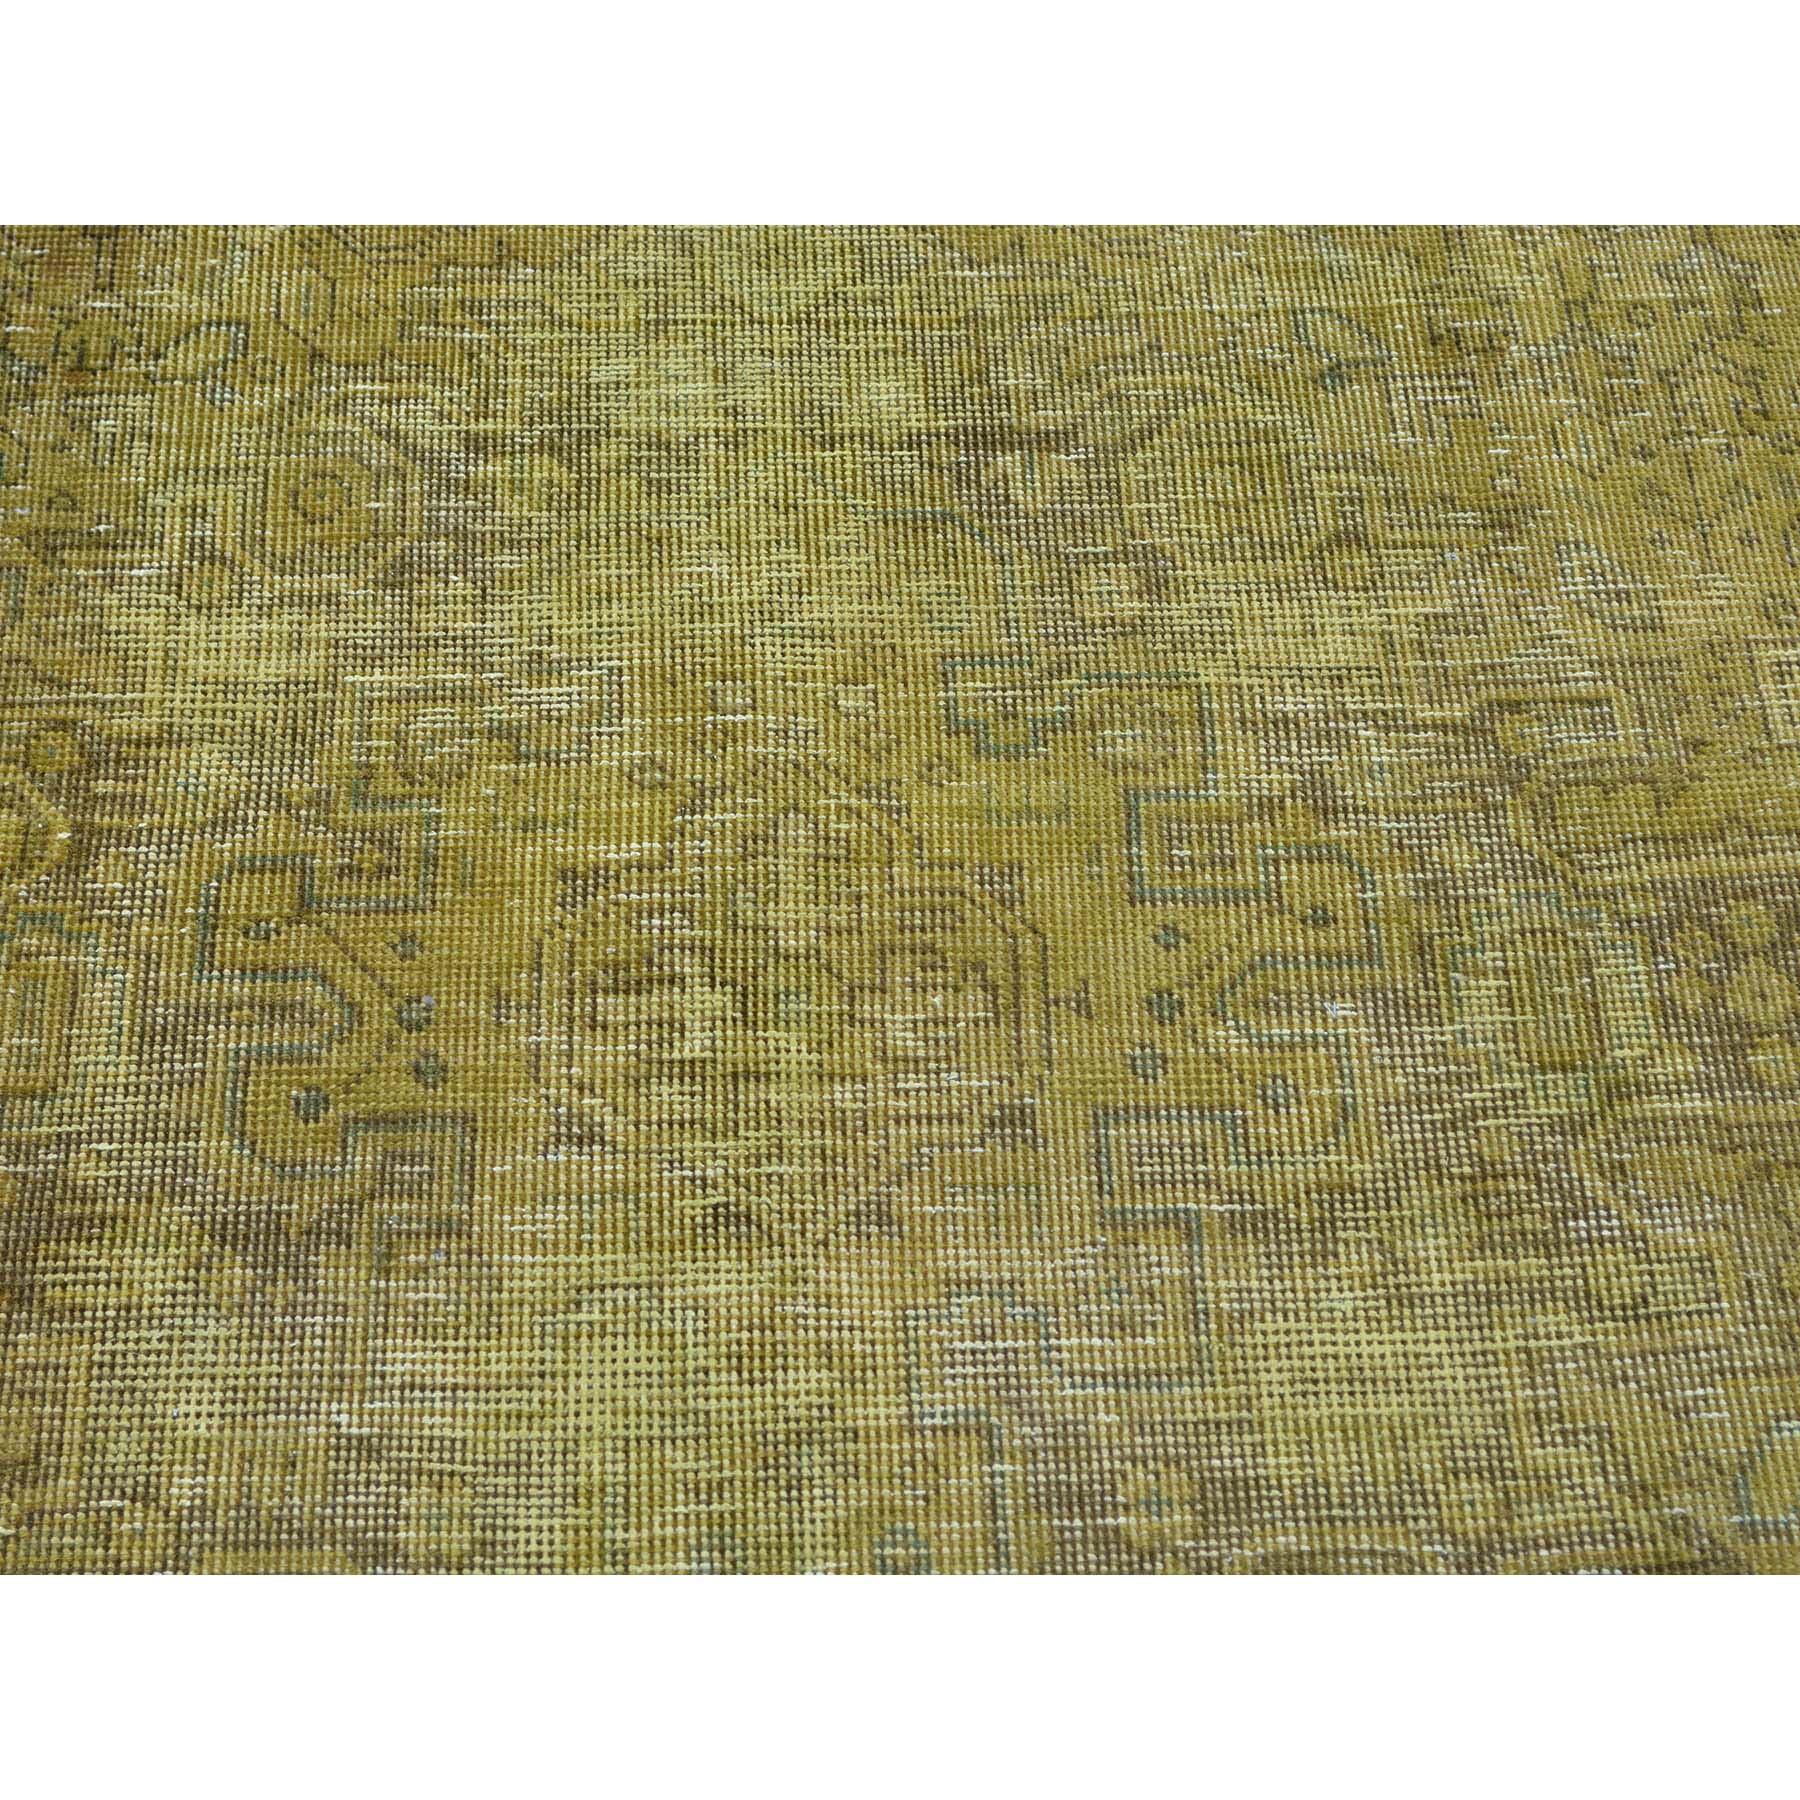 "Handmade Overdyed & Vintage Rectangle Rug > Design# SH23881 > Size: 6'-0"" x 9'-0"" [ONLINE ONLY]"